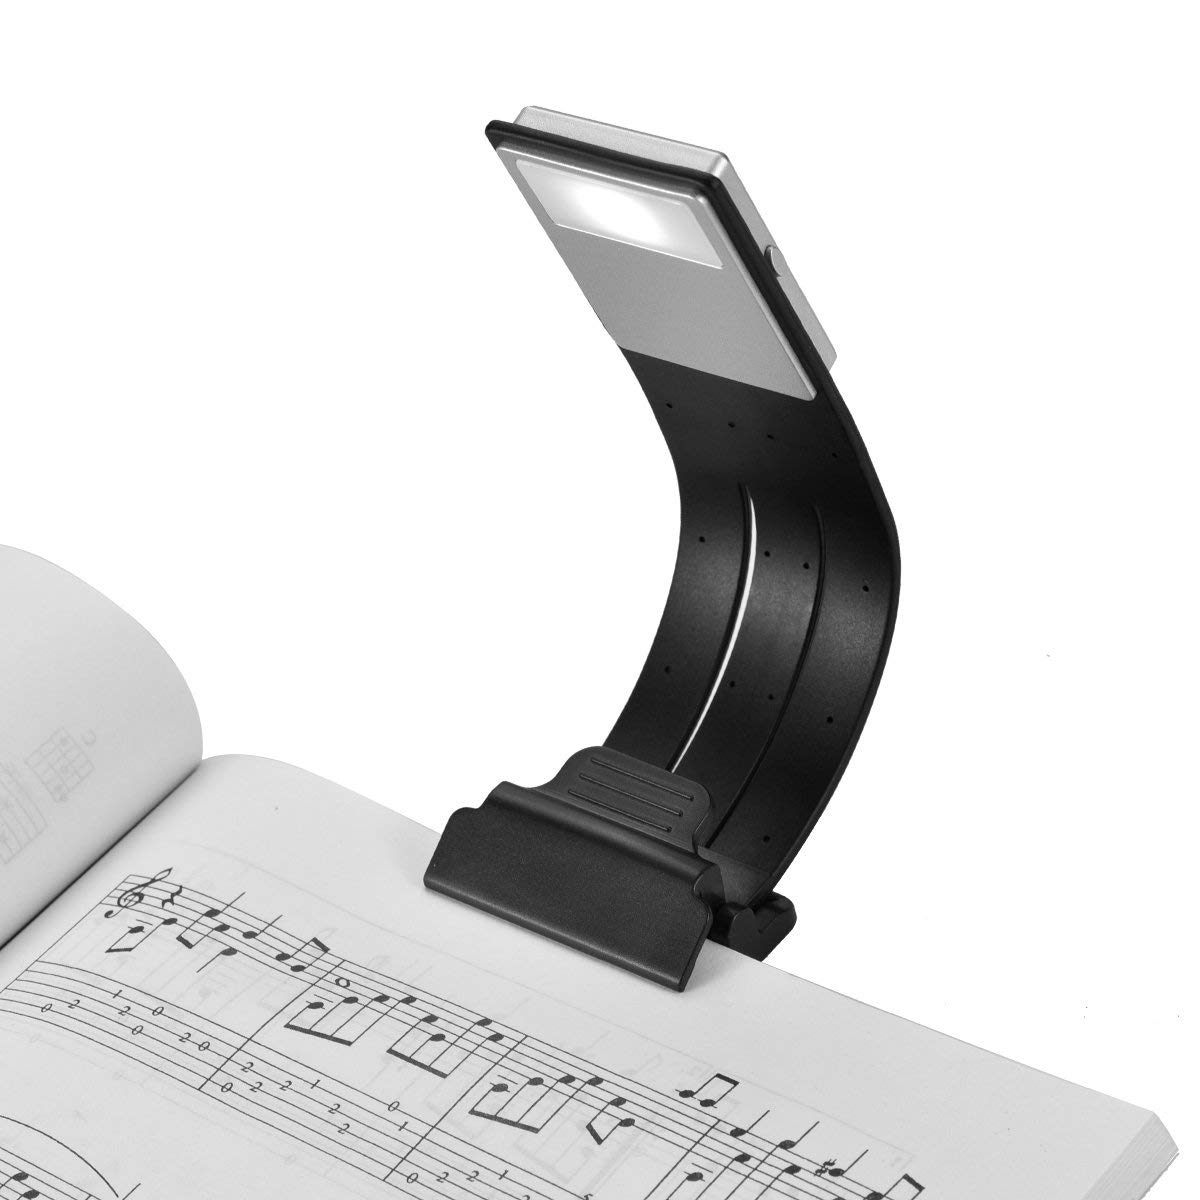 LOAMO Clip On Book Light USB Rechargeable LED Reading Lamp Eye Care Double As Bookmark Desk & Bed Lamp Flexible with 4 Level Dimmable for Book, ipad and More (Black) by LOAMO